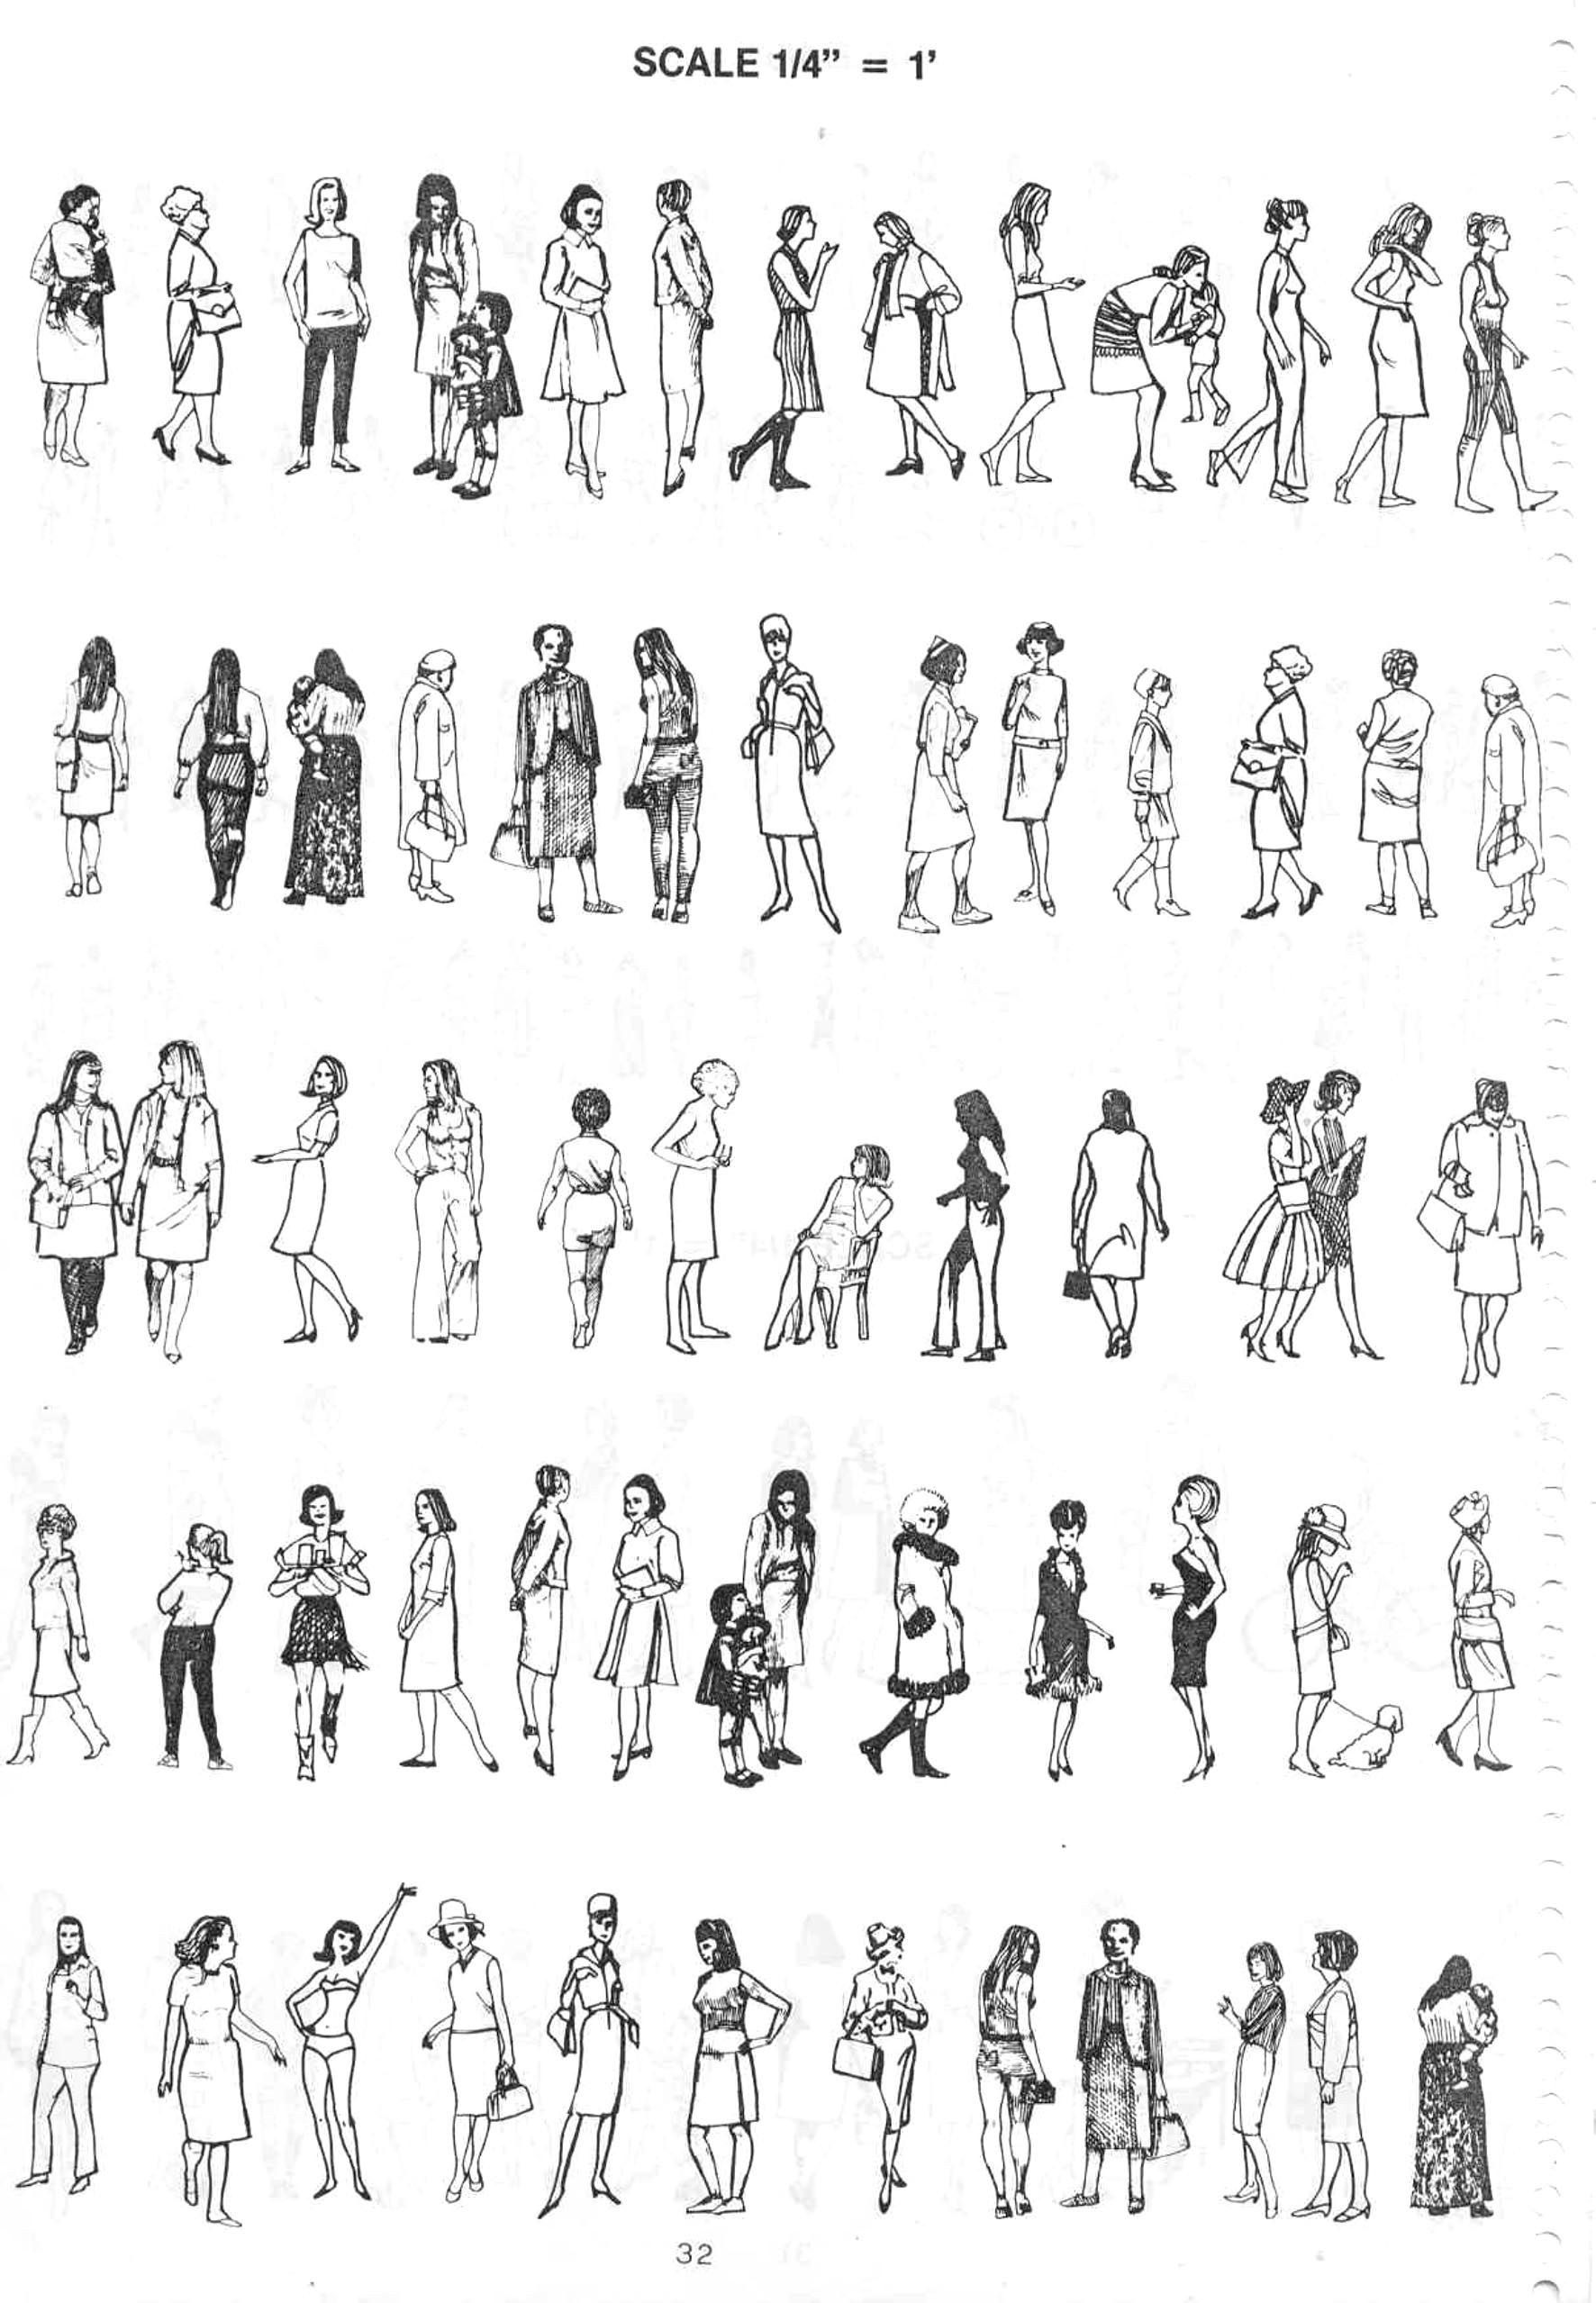 Pin By Saruta Leenothai On Perspective Human Figure Sketches Drawing People Sketches Of People